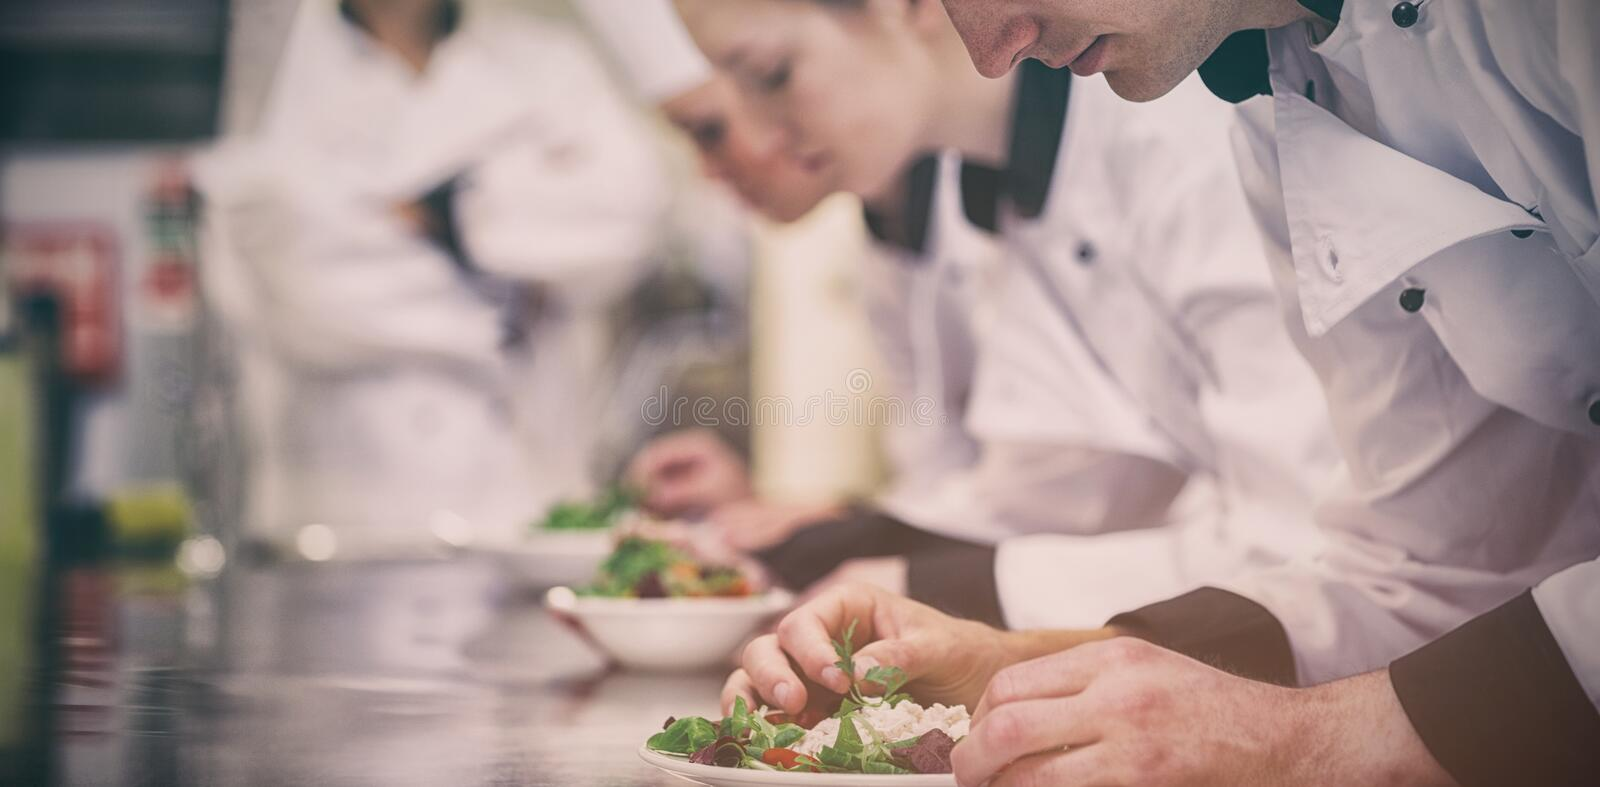 Culinary class in kitchen making salads stock photos